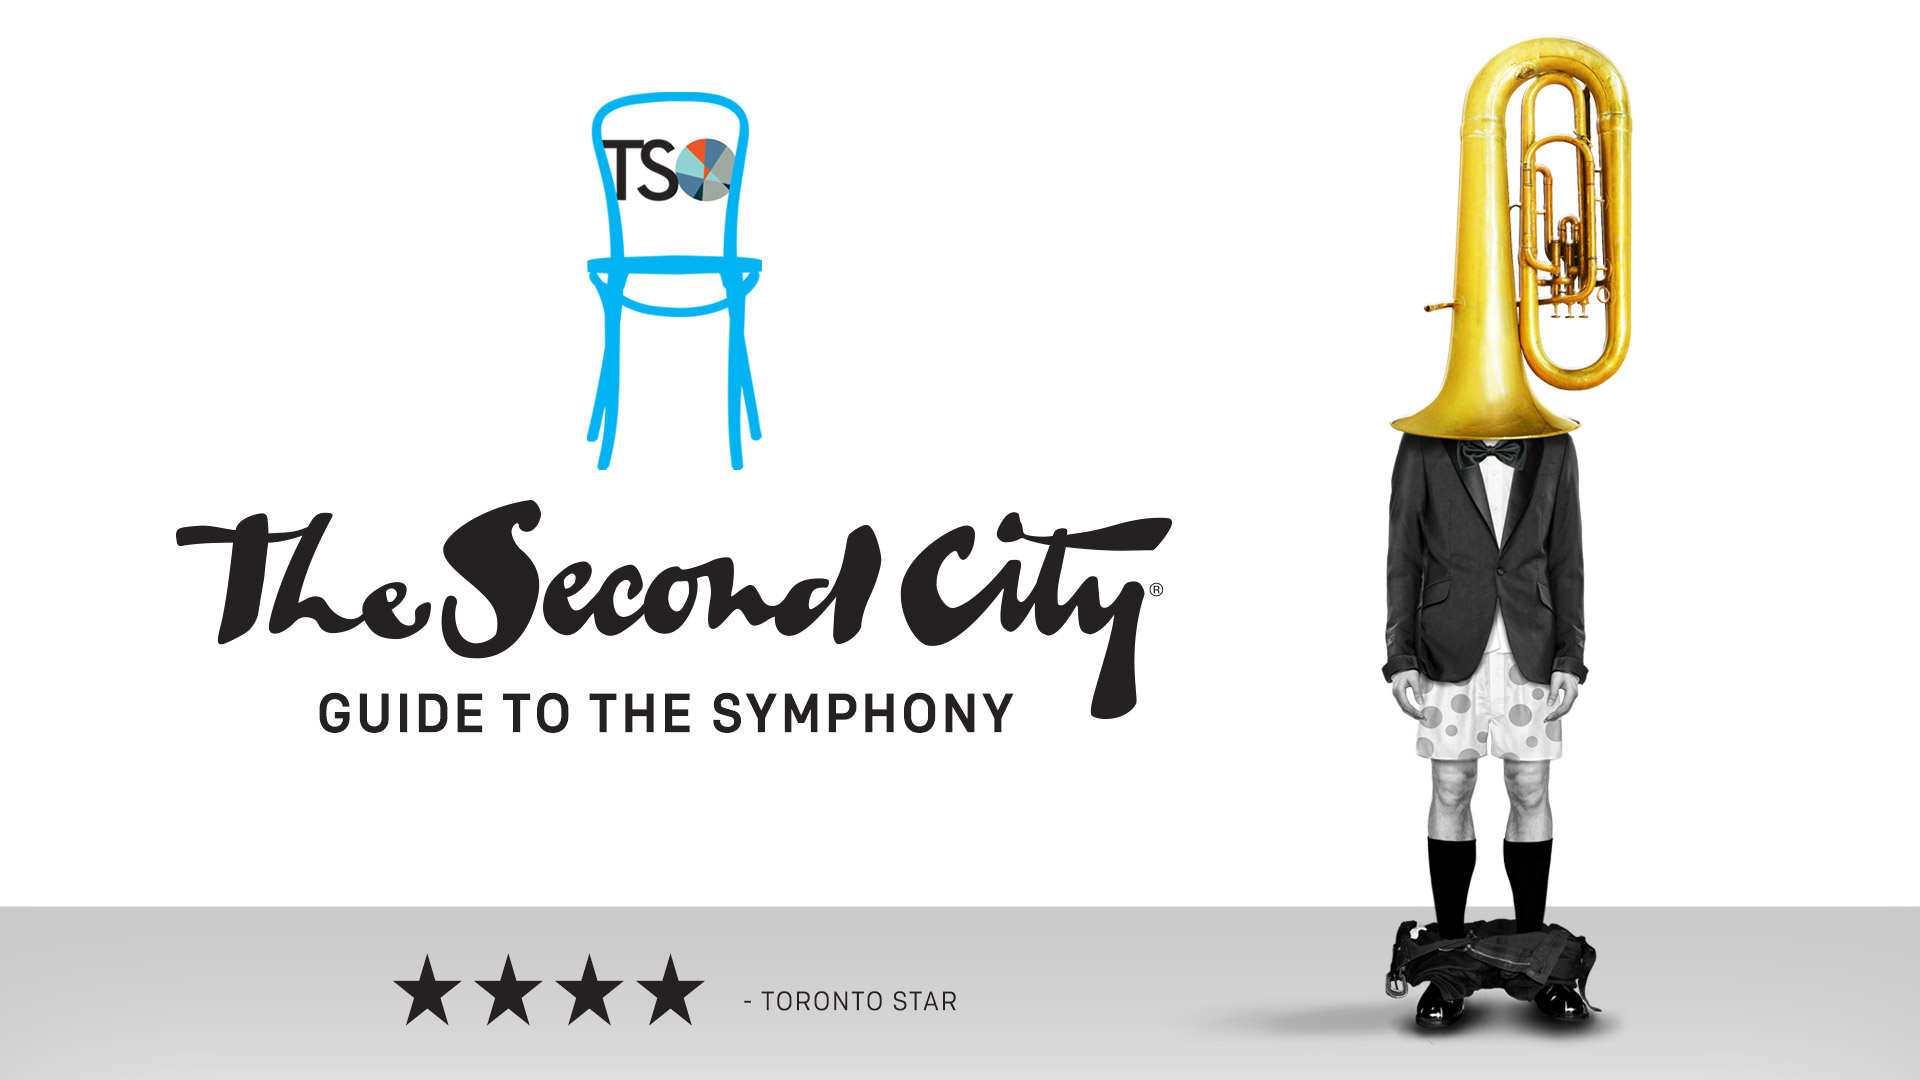 The Second City's Guide to the Symphony